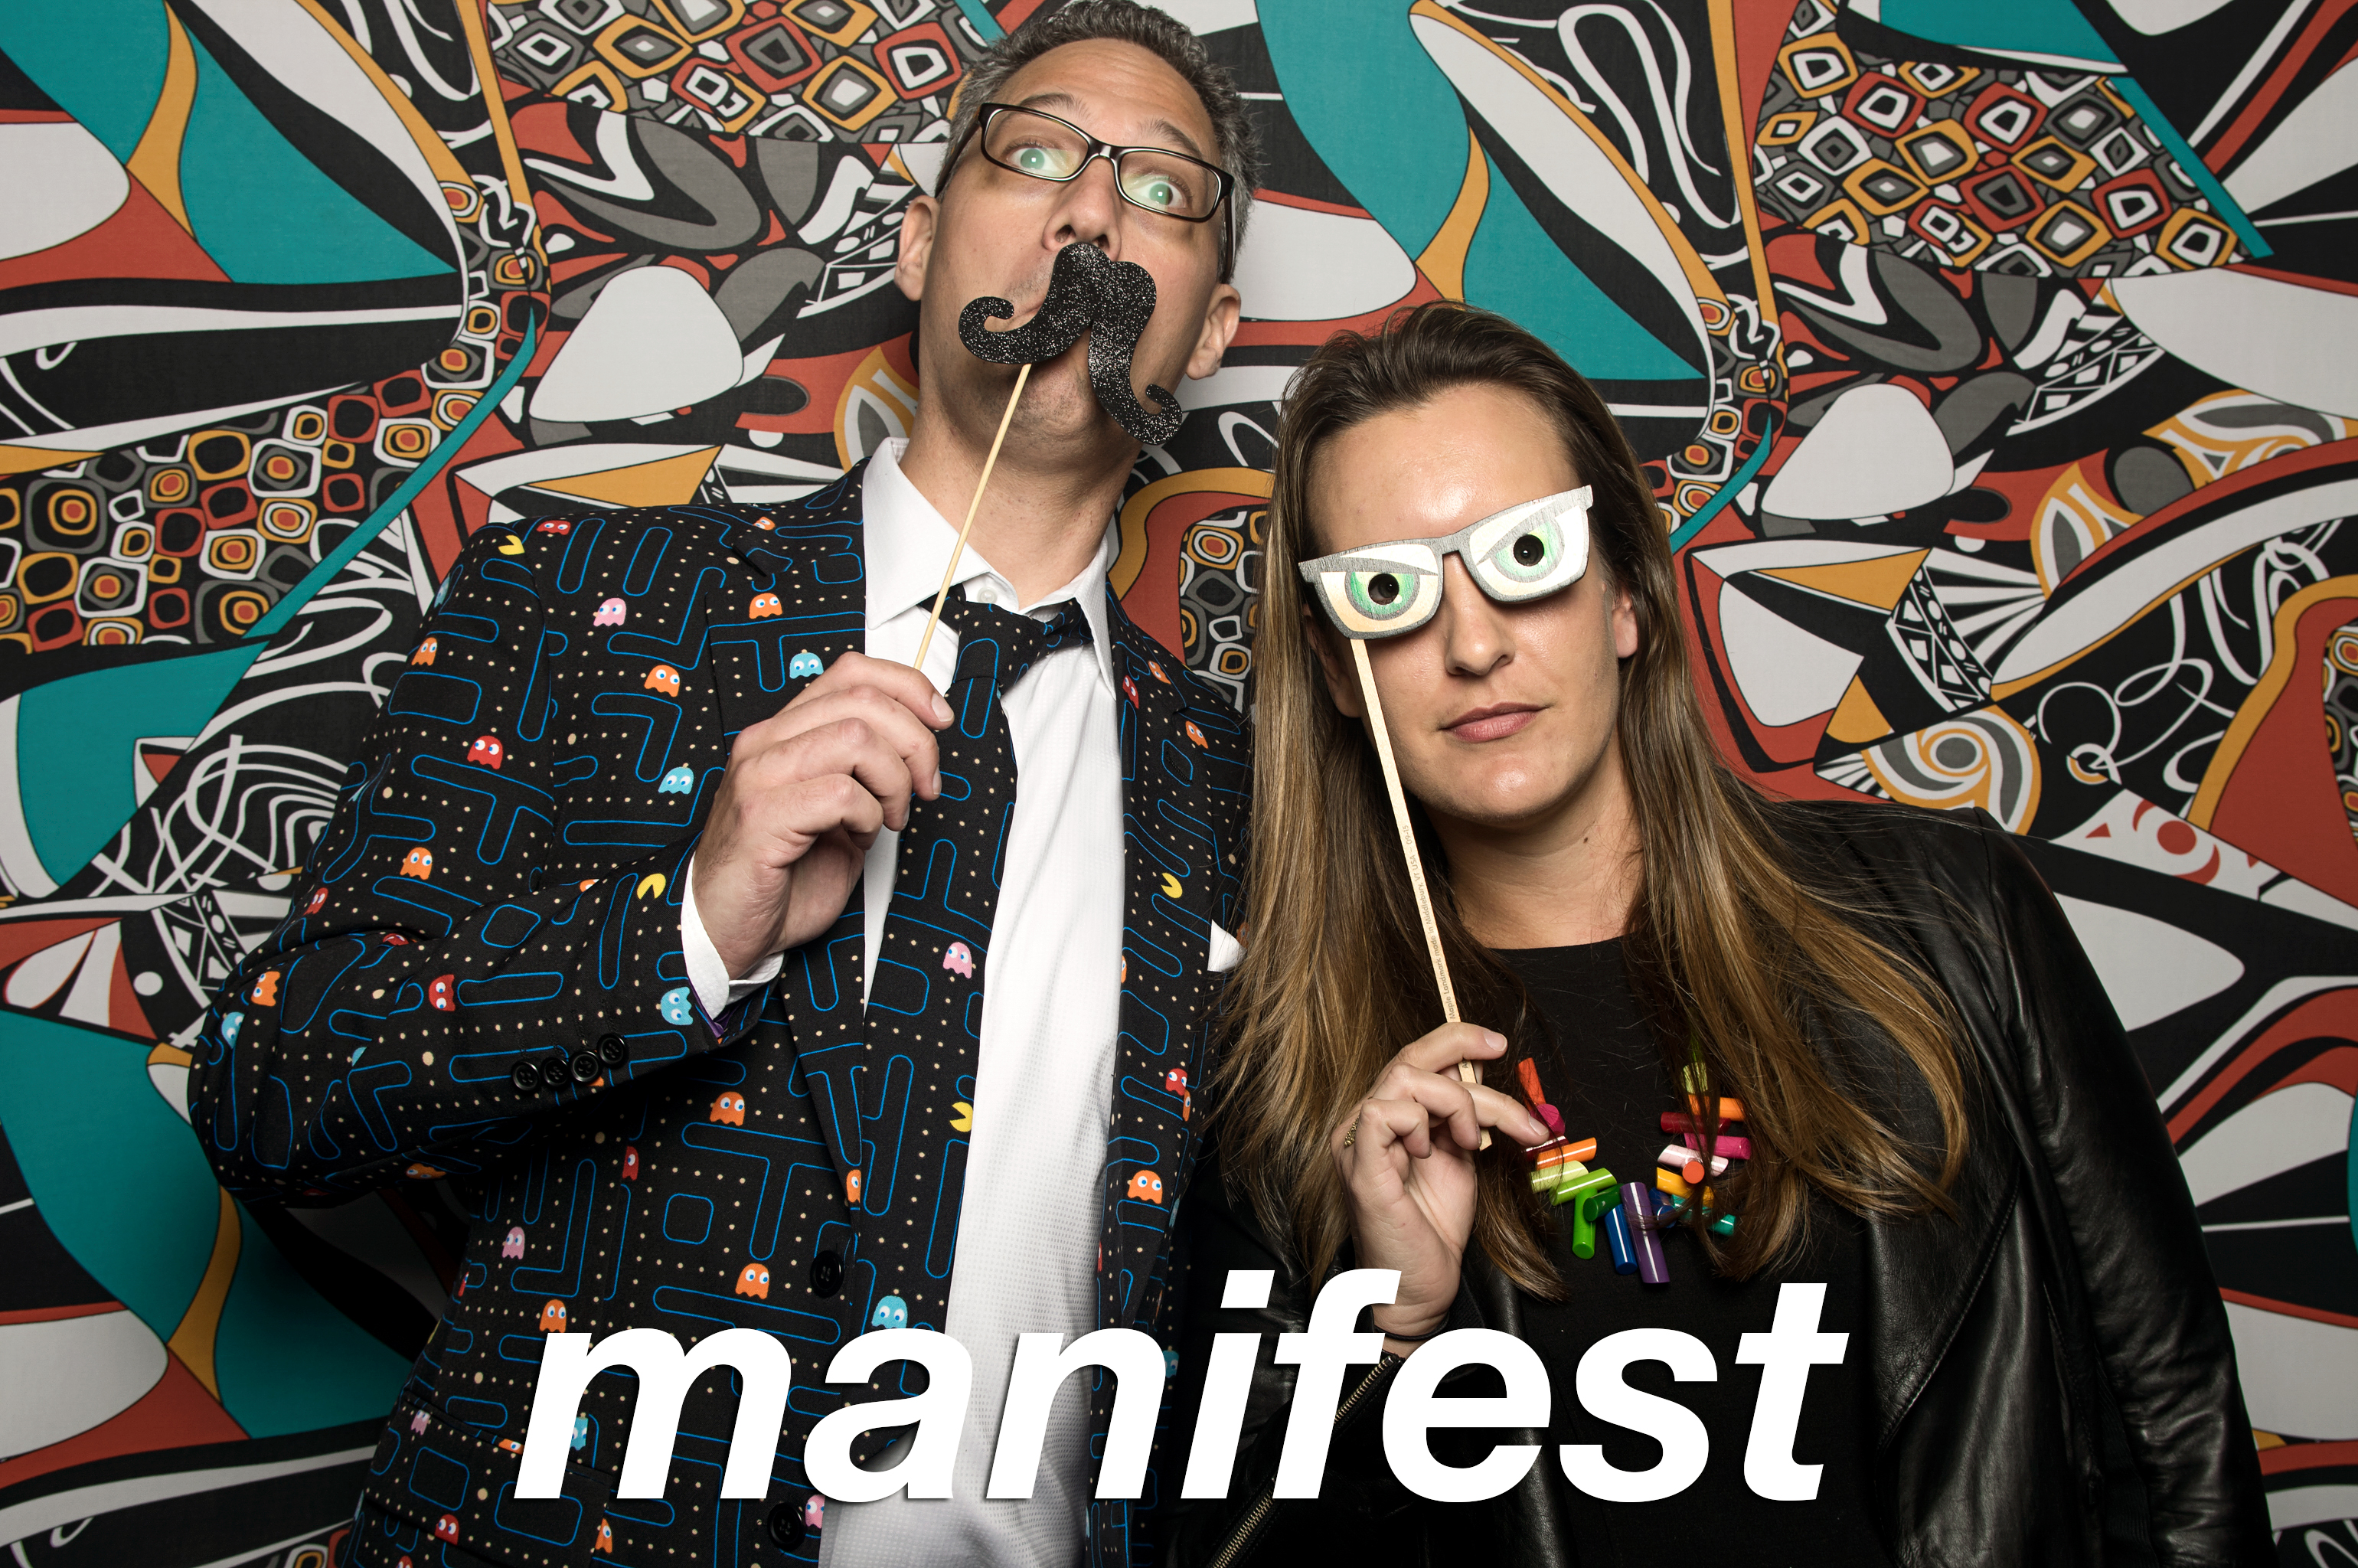 photo booth portraits from manifest at the gray hotel, september 2016